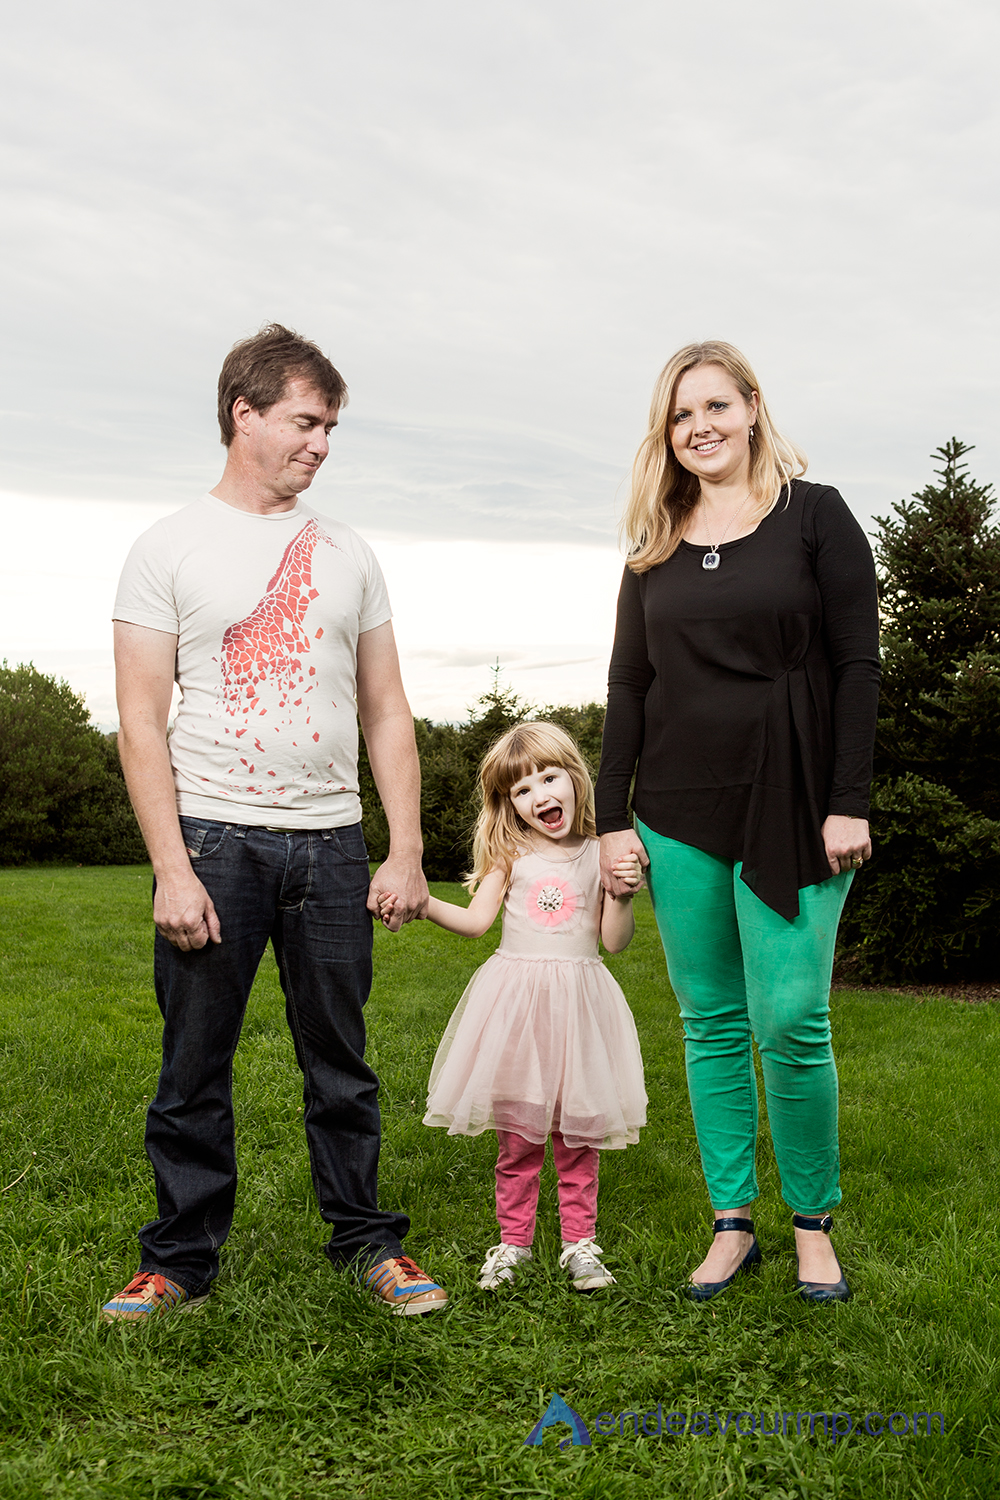 portraits_family_SVB10.jpg